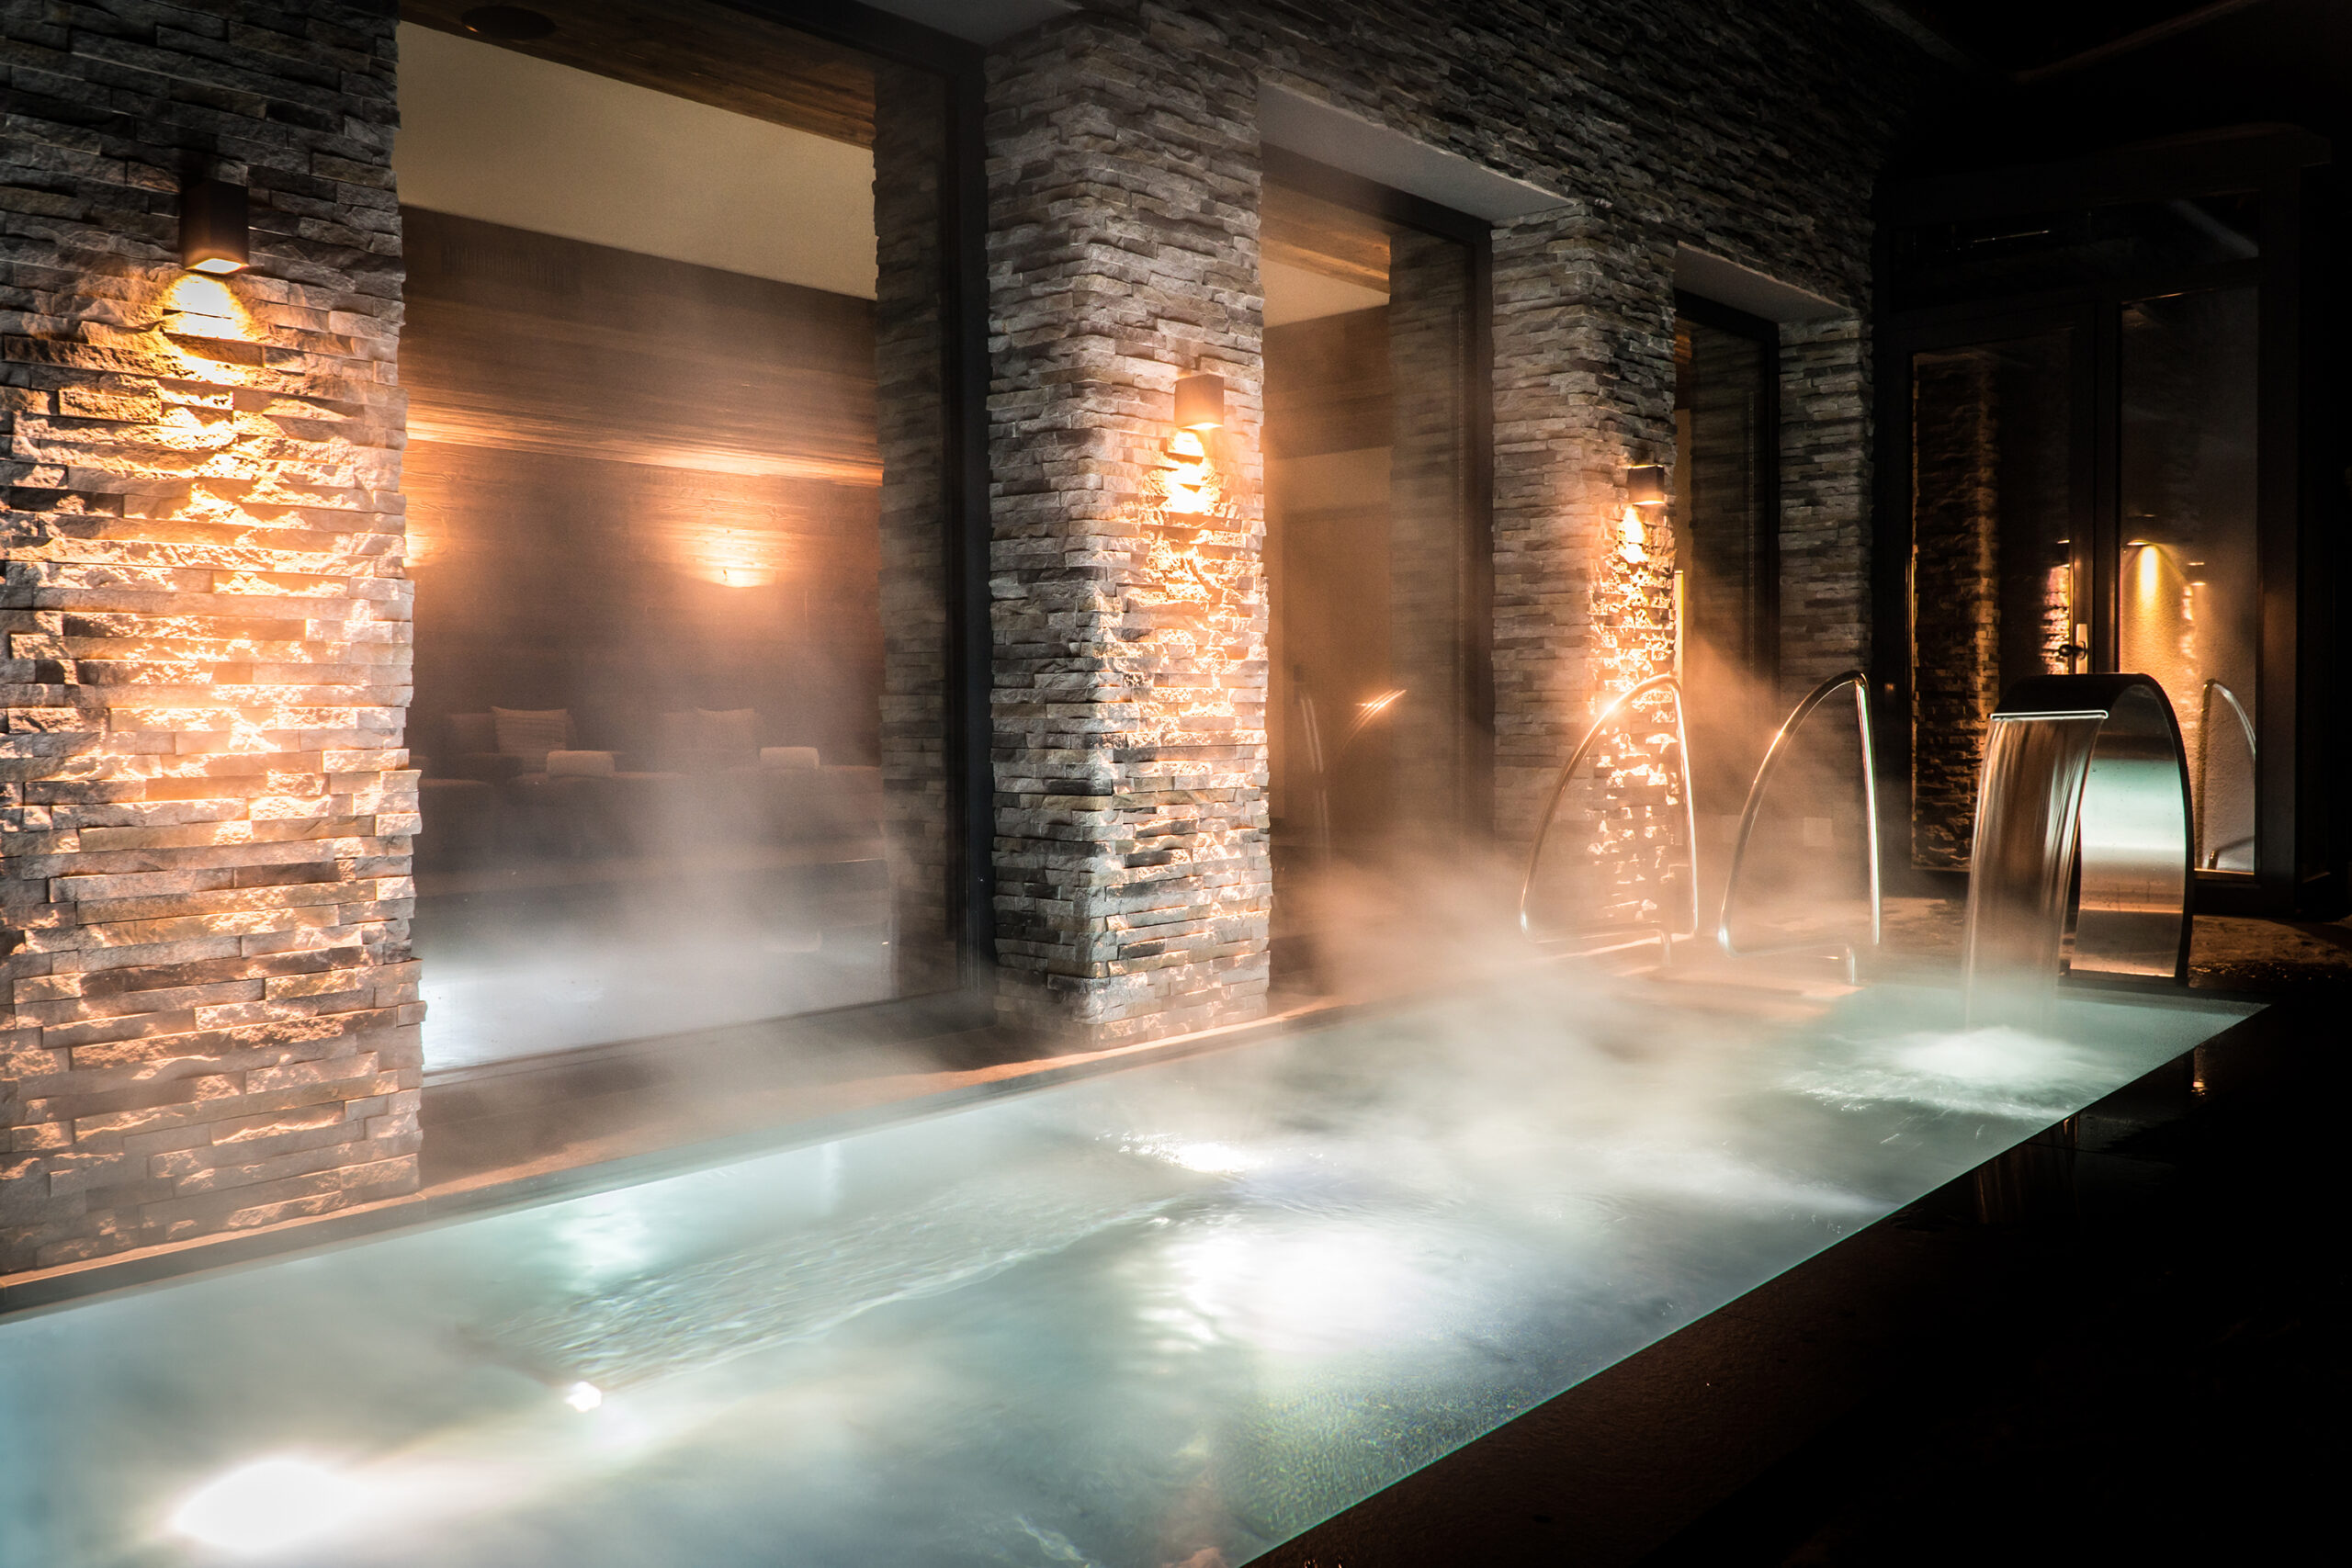 Spa featuring steaming pool